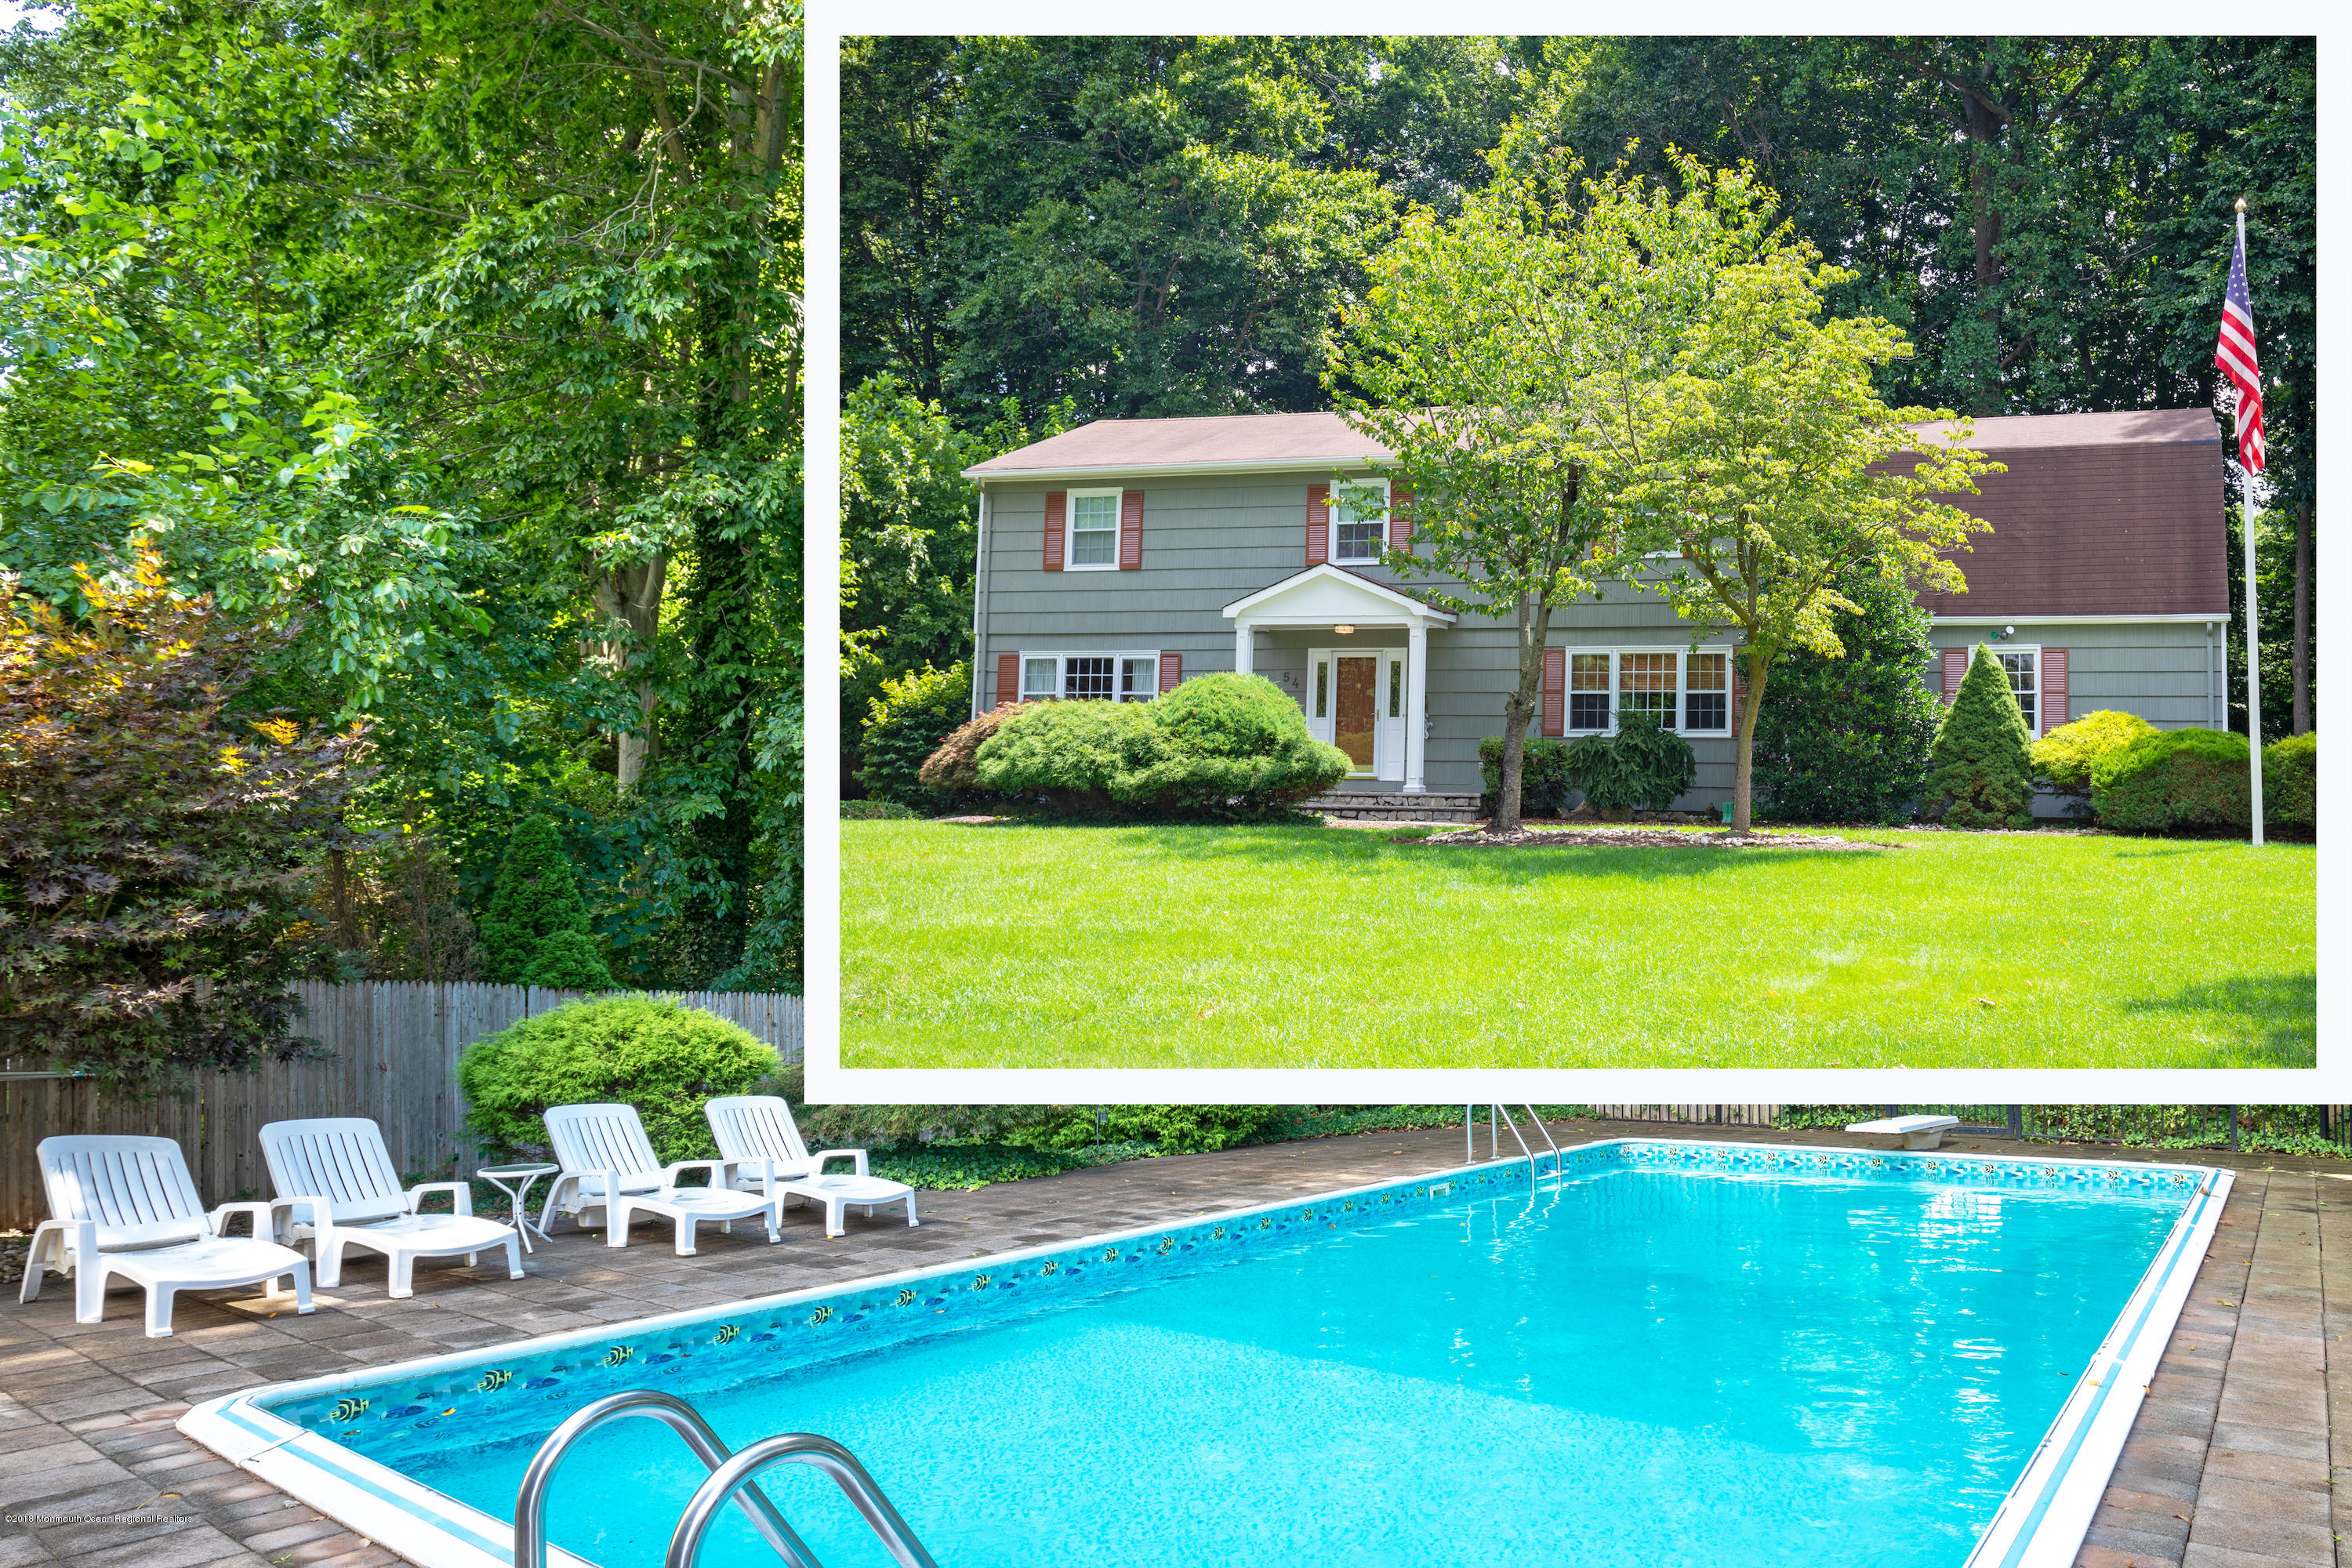 Homes For Sale With Inground Pools